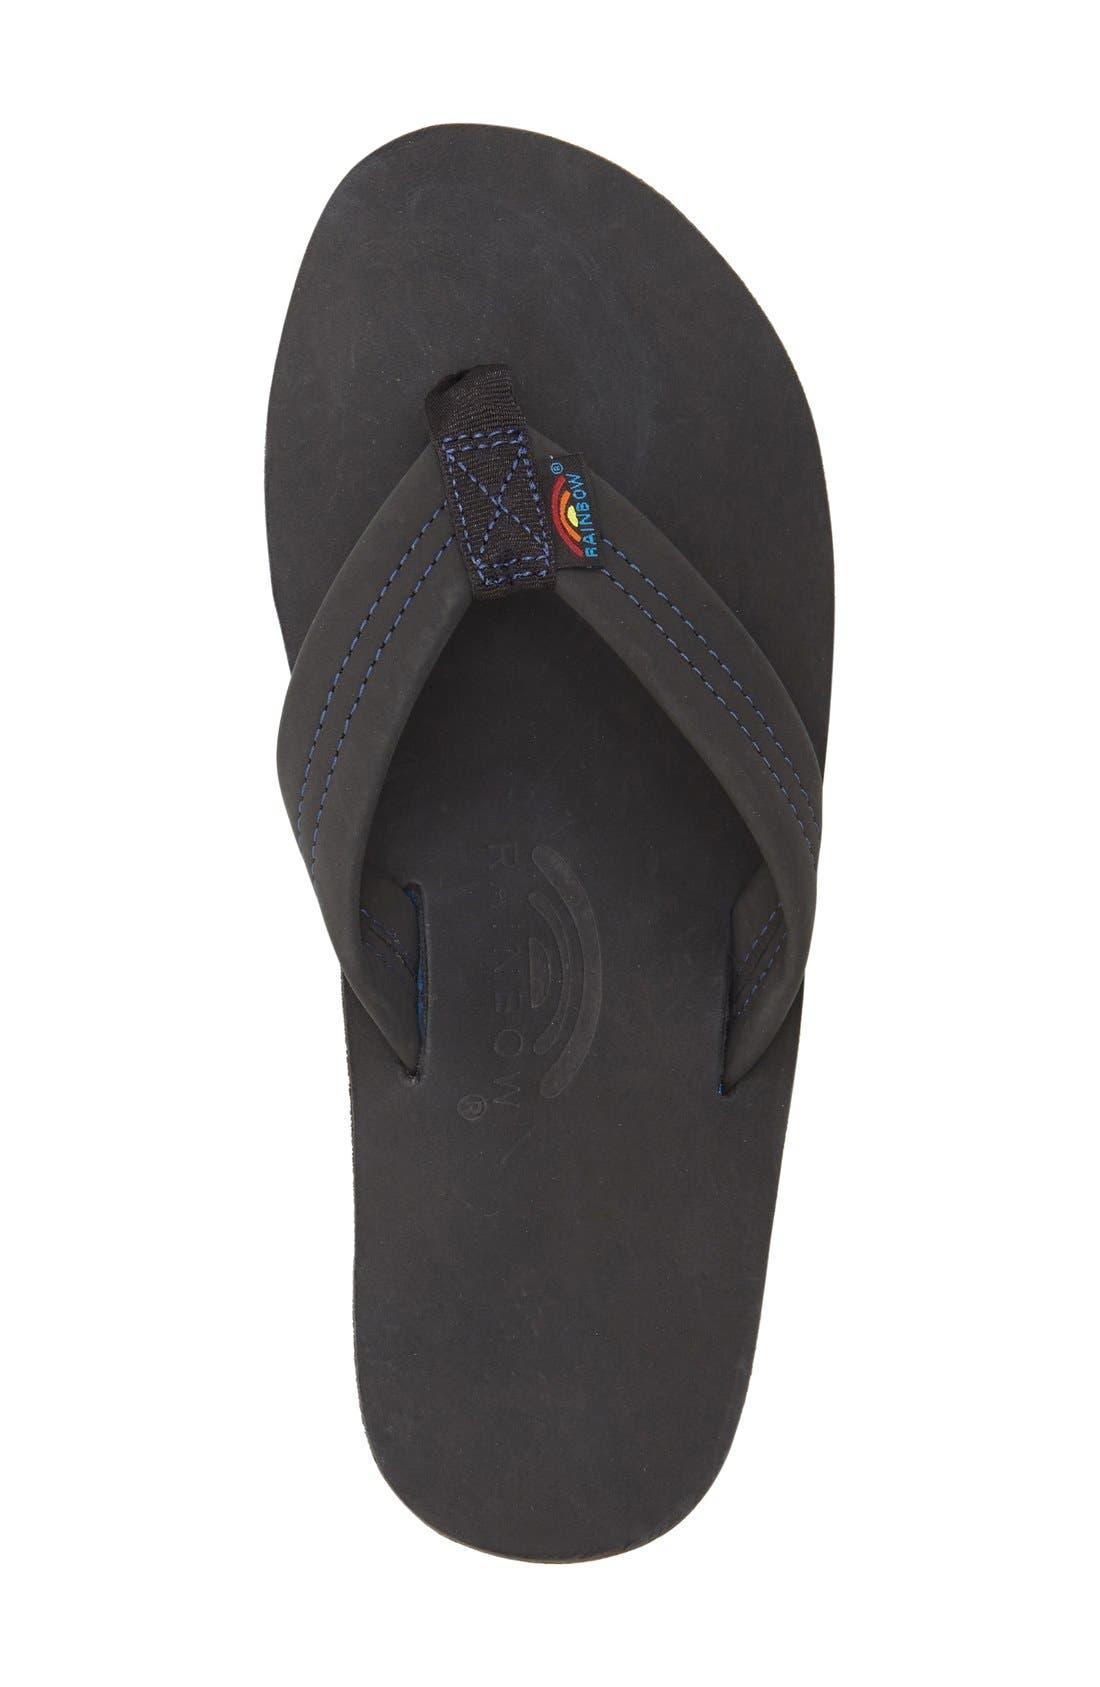 '301Blue' Flip Flop,                             Alternate thumbnail 3, color,                             Premier Black/ Blue Midsole